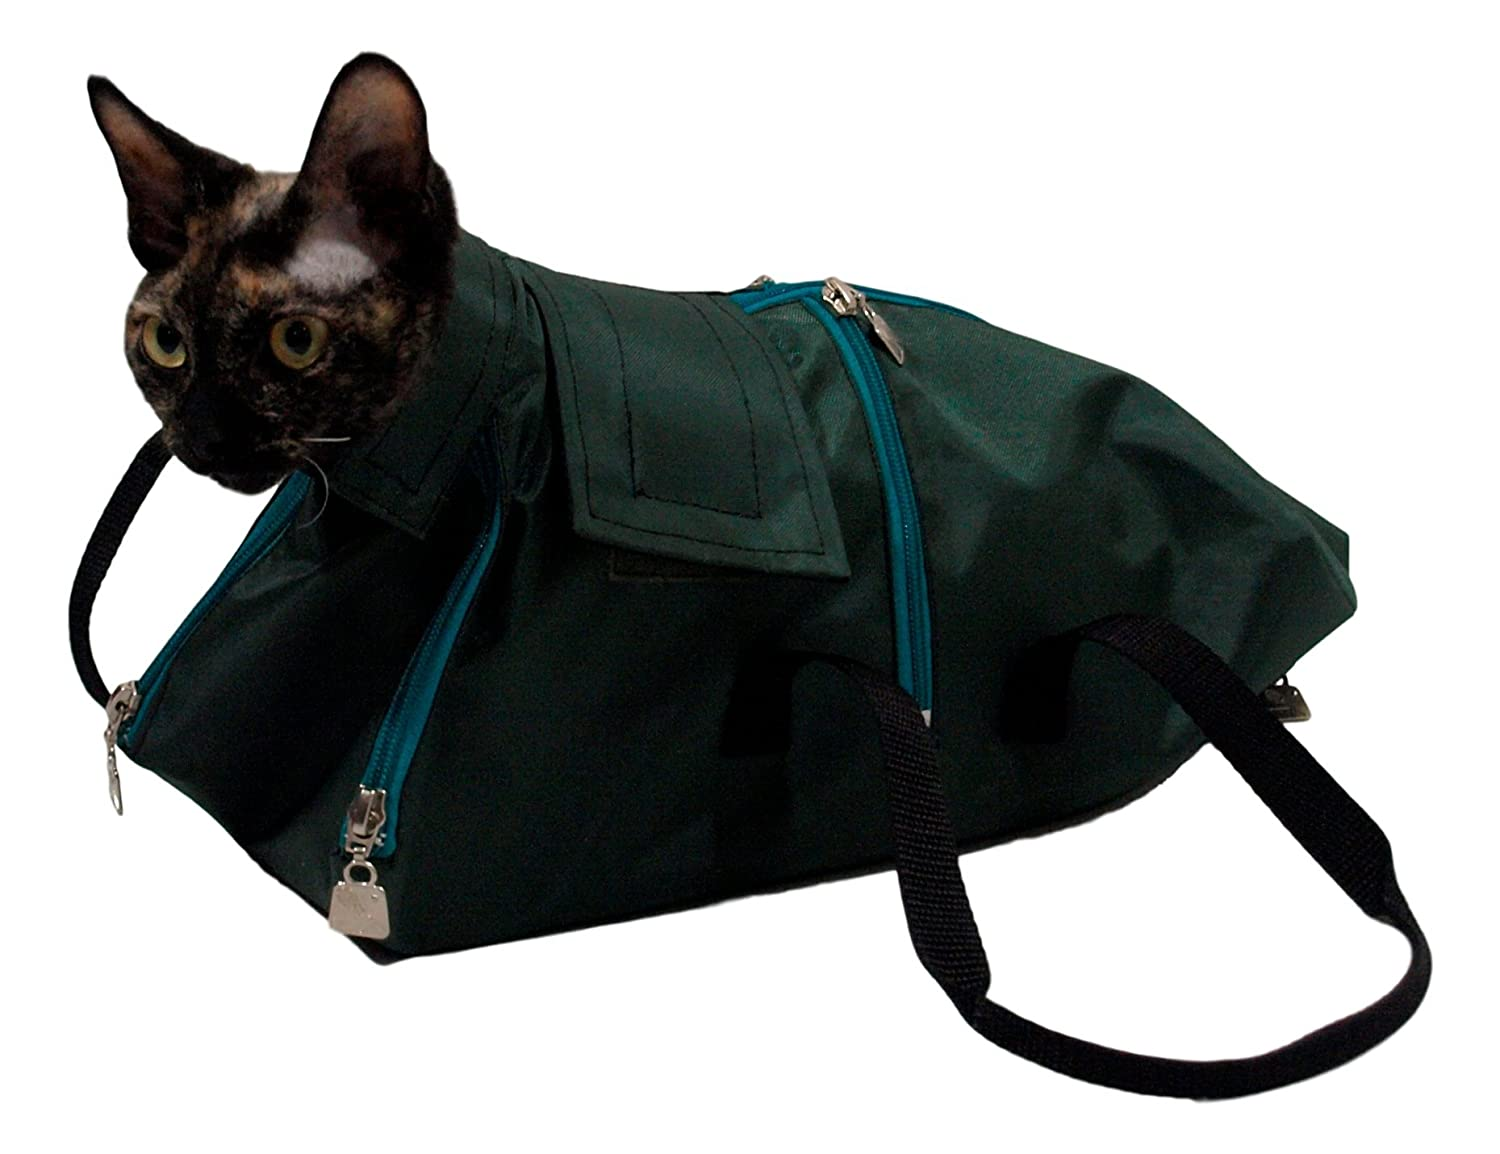 a85b20af8c7 Amazon.com : After Surgery Wear Premium Cat Restraint Bag, Cat Grooming Bag,  Cat Carrier Bag. Made in Europe Using The Fabrics. (Small) : Pet Supplies